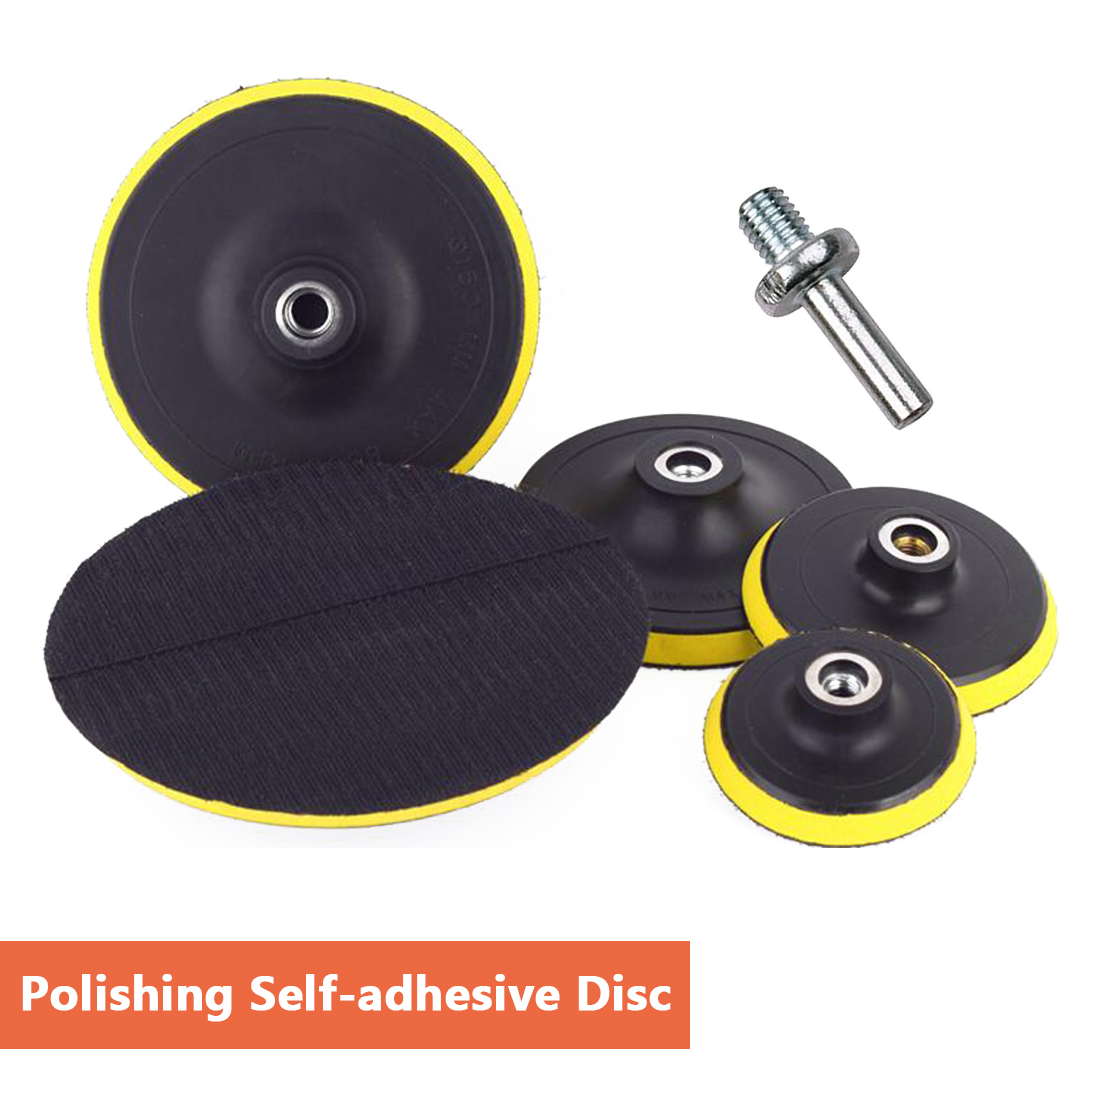 Polishing Disc Suction Cup Self-adhesive Sticky Disk  3